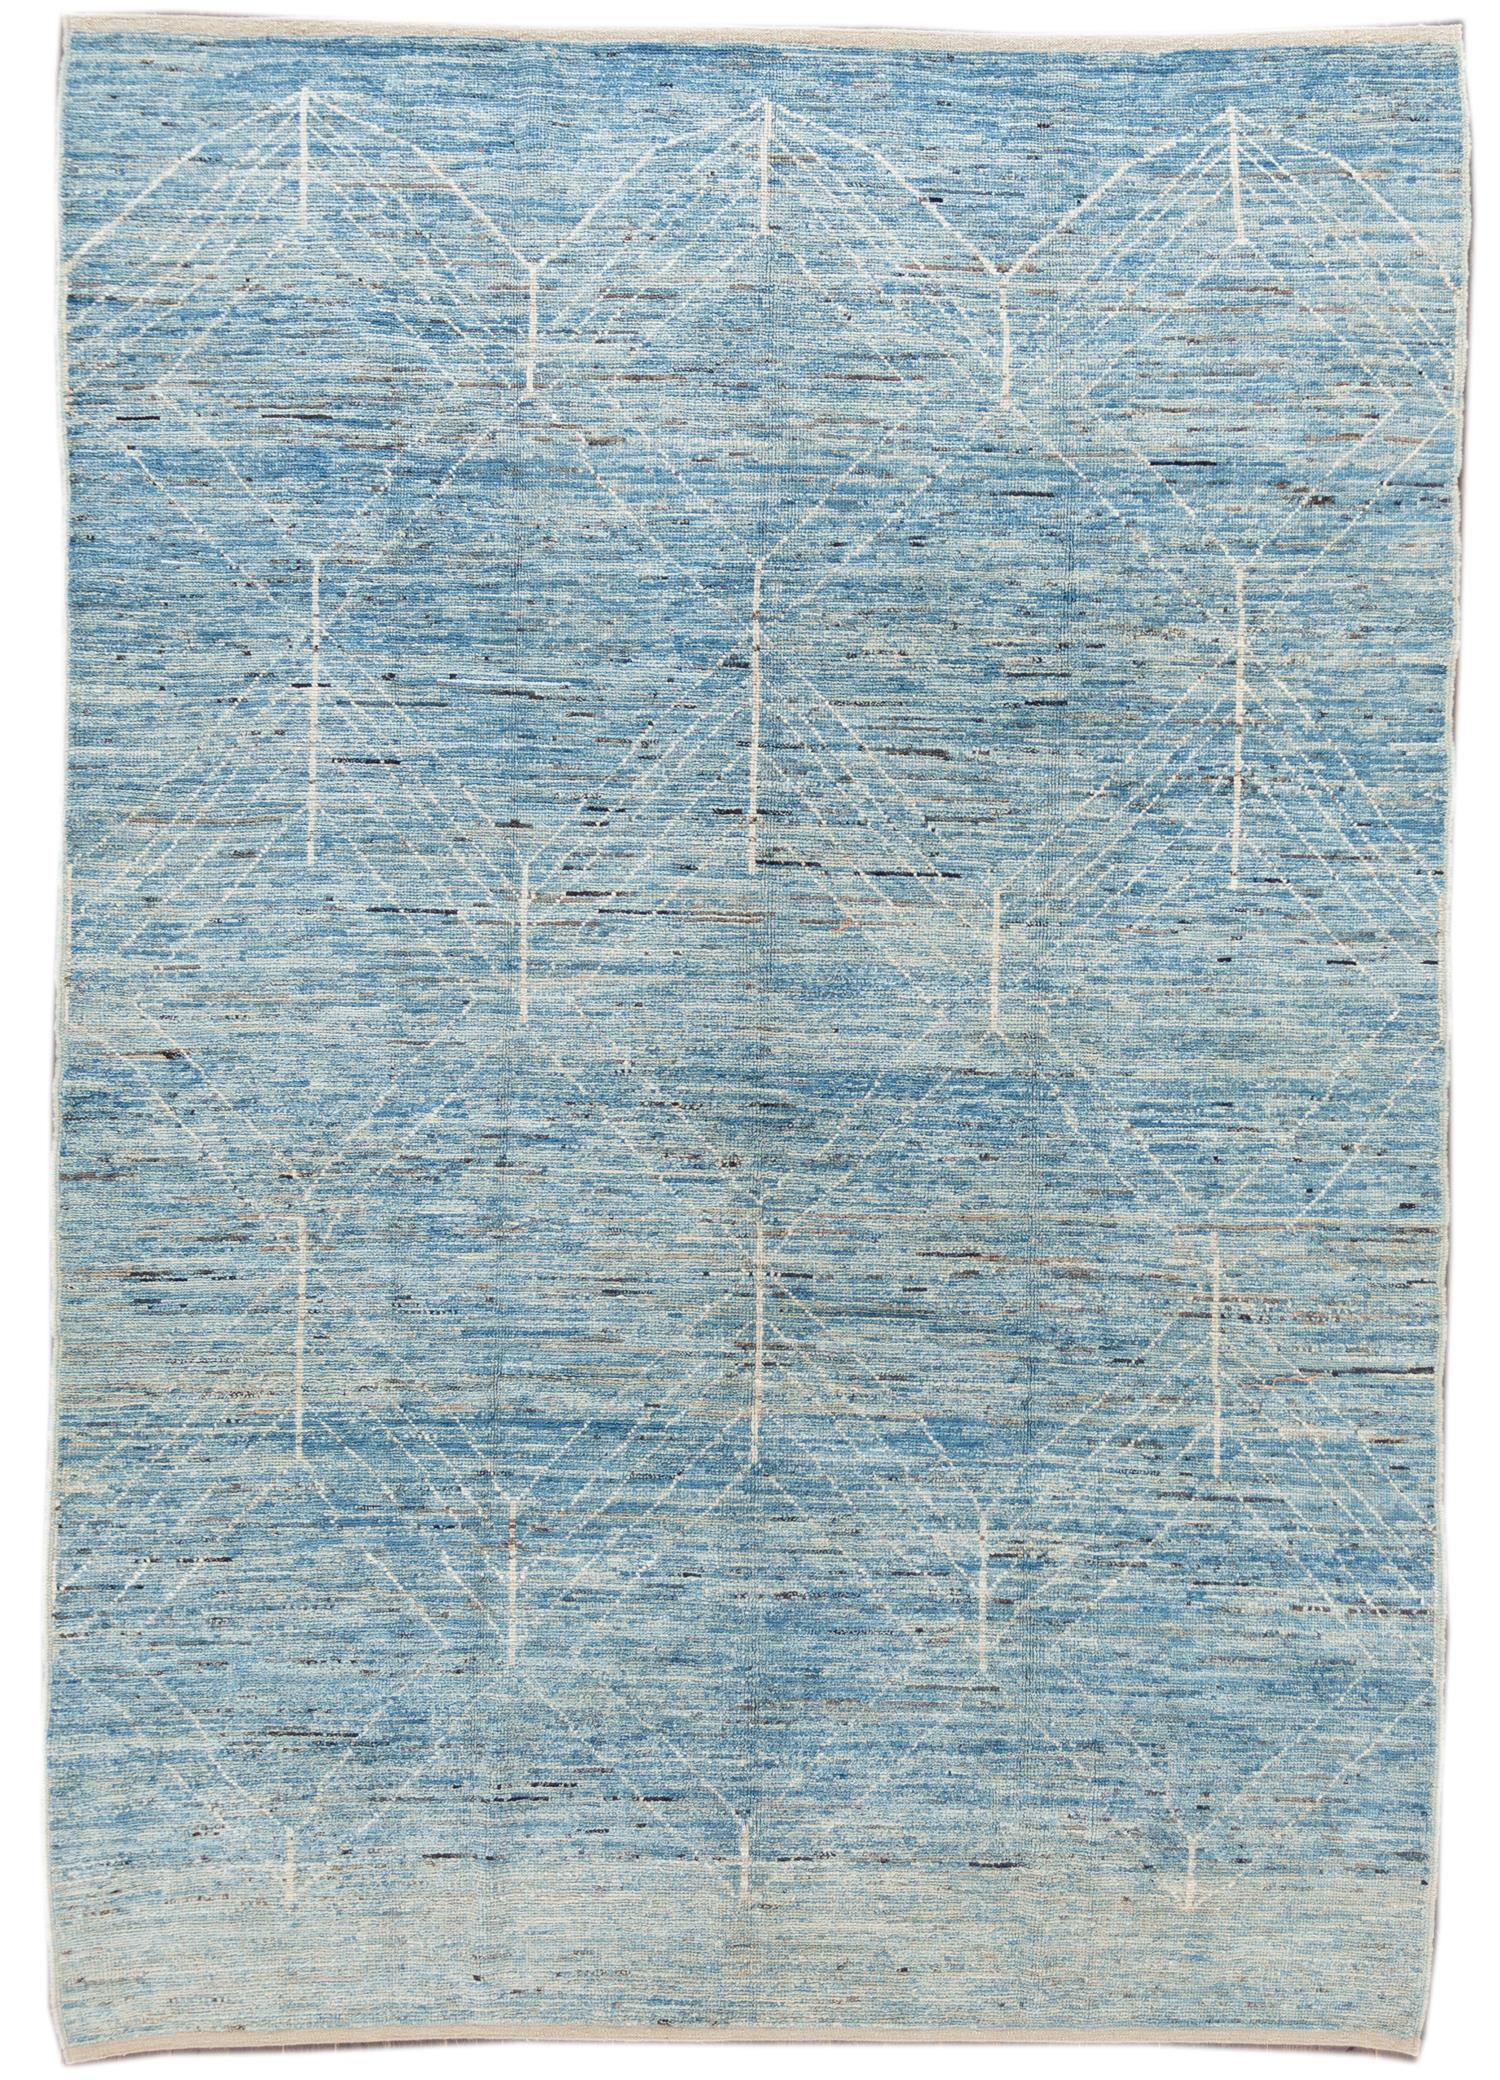 21st Century Modern Moroccan-Style Rug, 7' x 10'